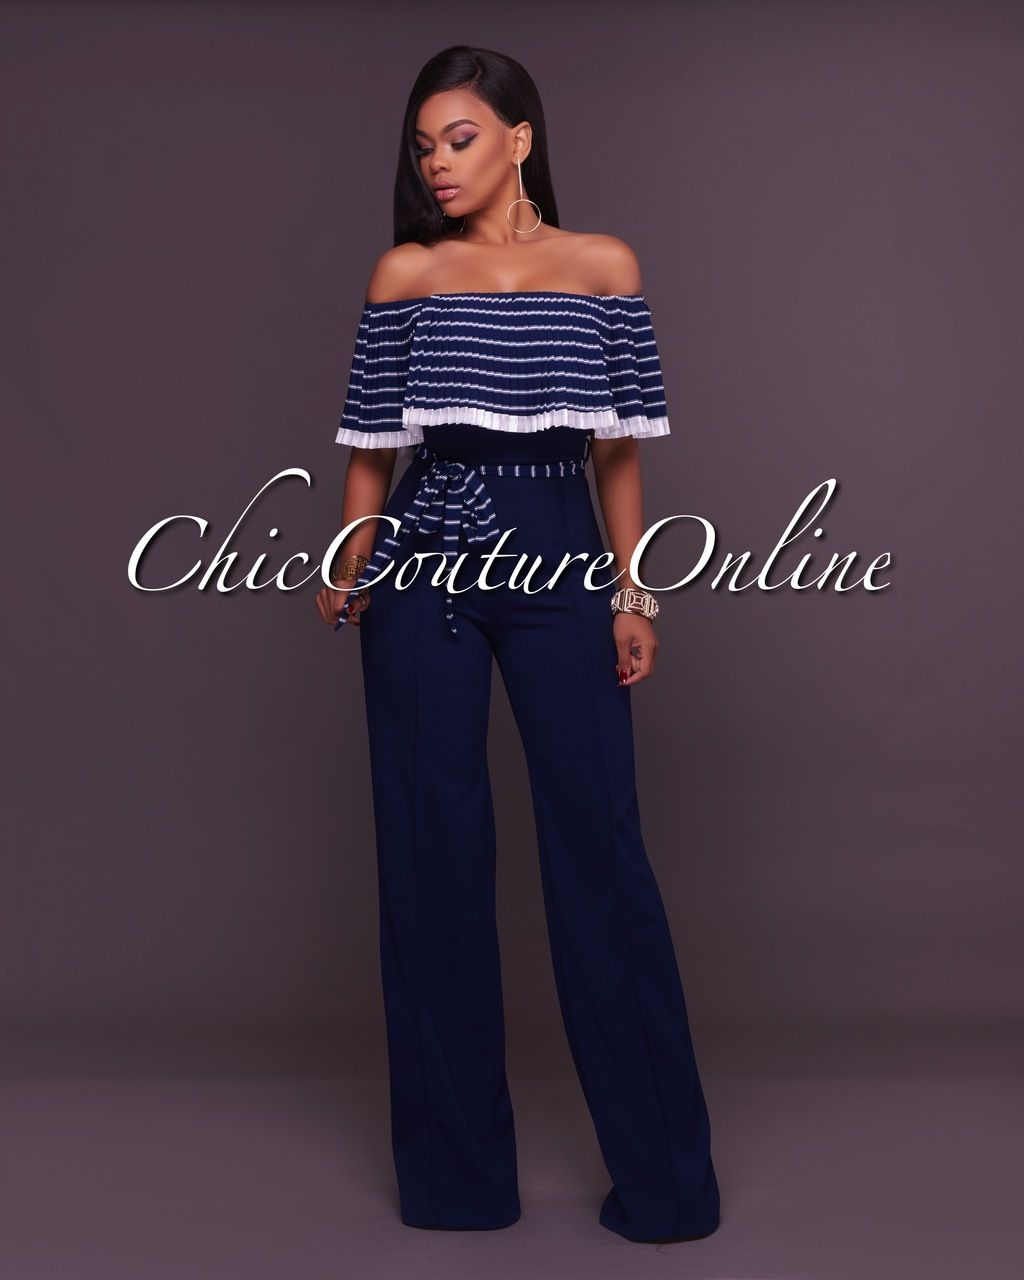 7ba3d774ea Chic Couture Online - Cayenne Navy-Blue White Stripes Ruffle Top Strapless  Jumpsuit